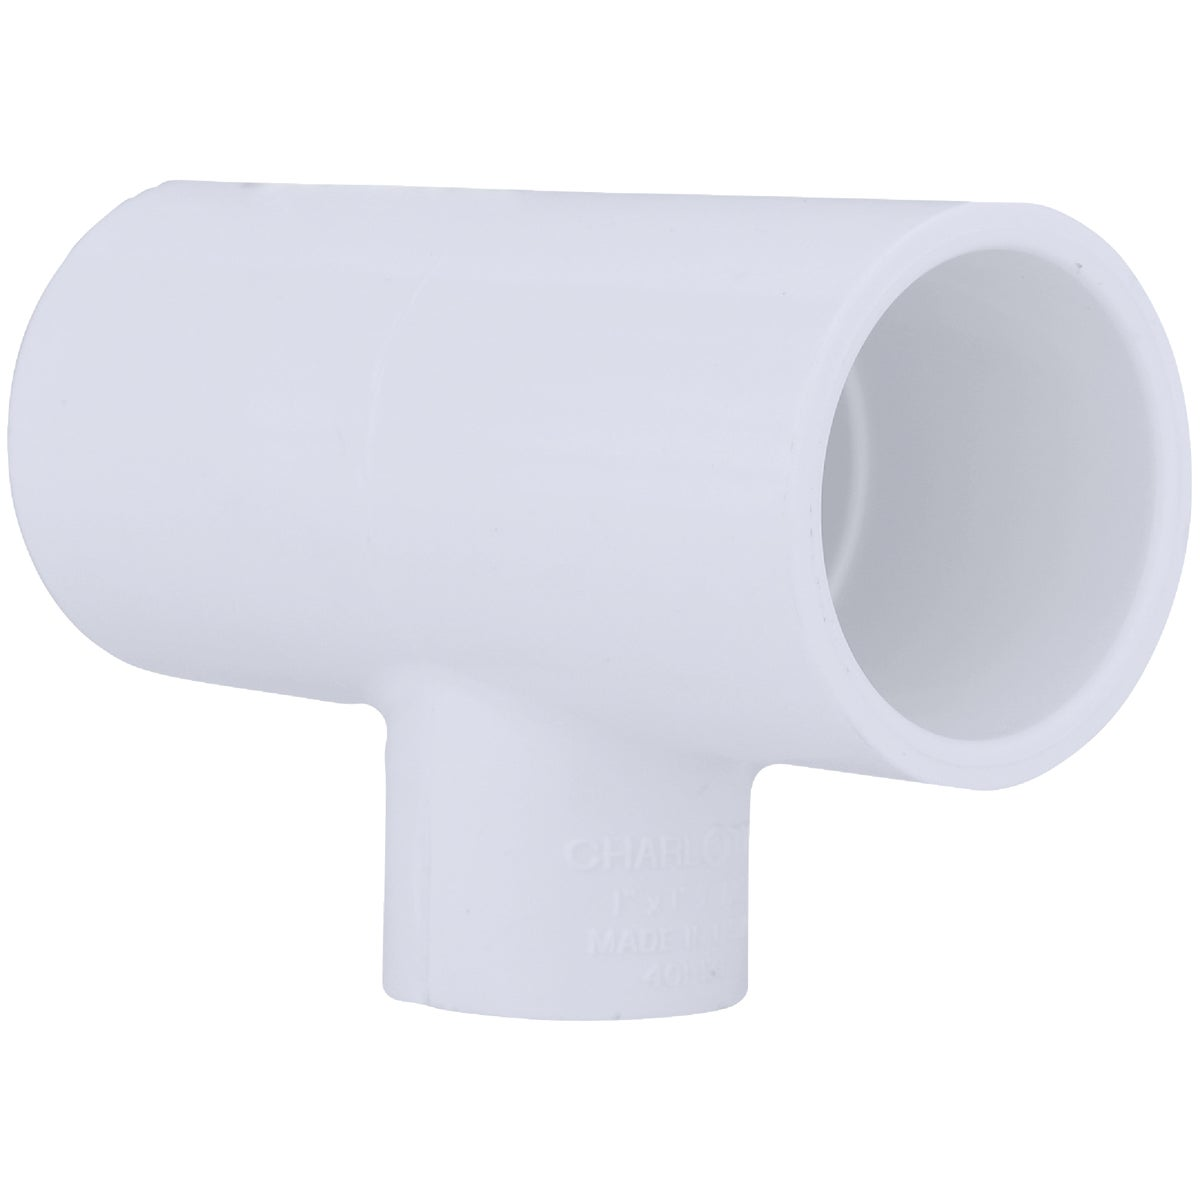 "1""X1/2"" SCH40 PVC TEE - 31475 by Genova Inc"